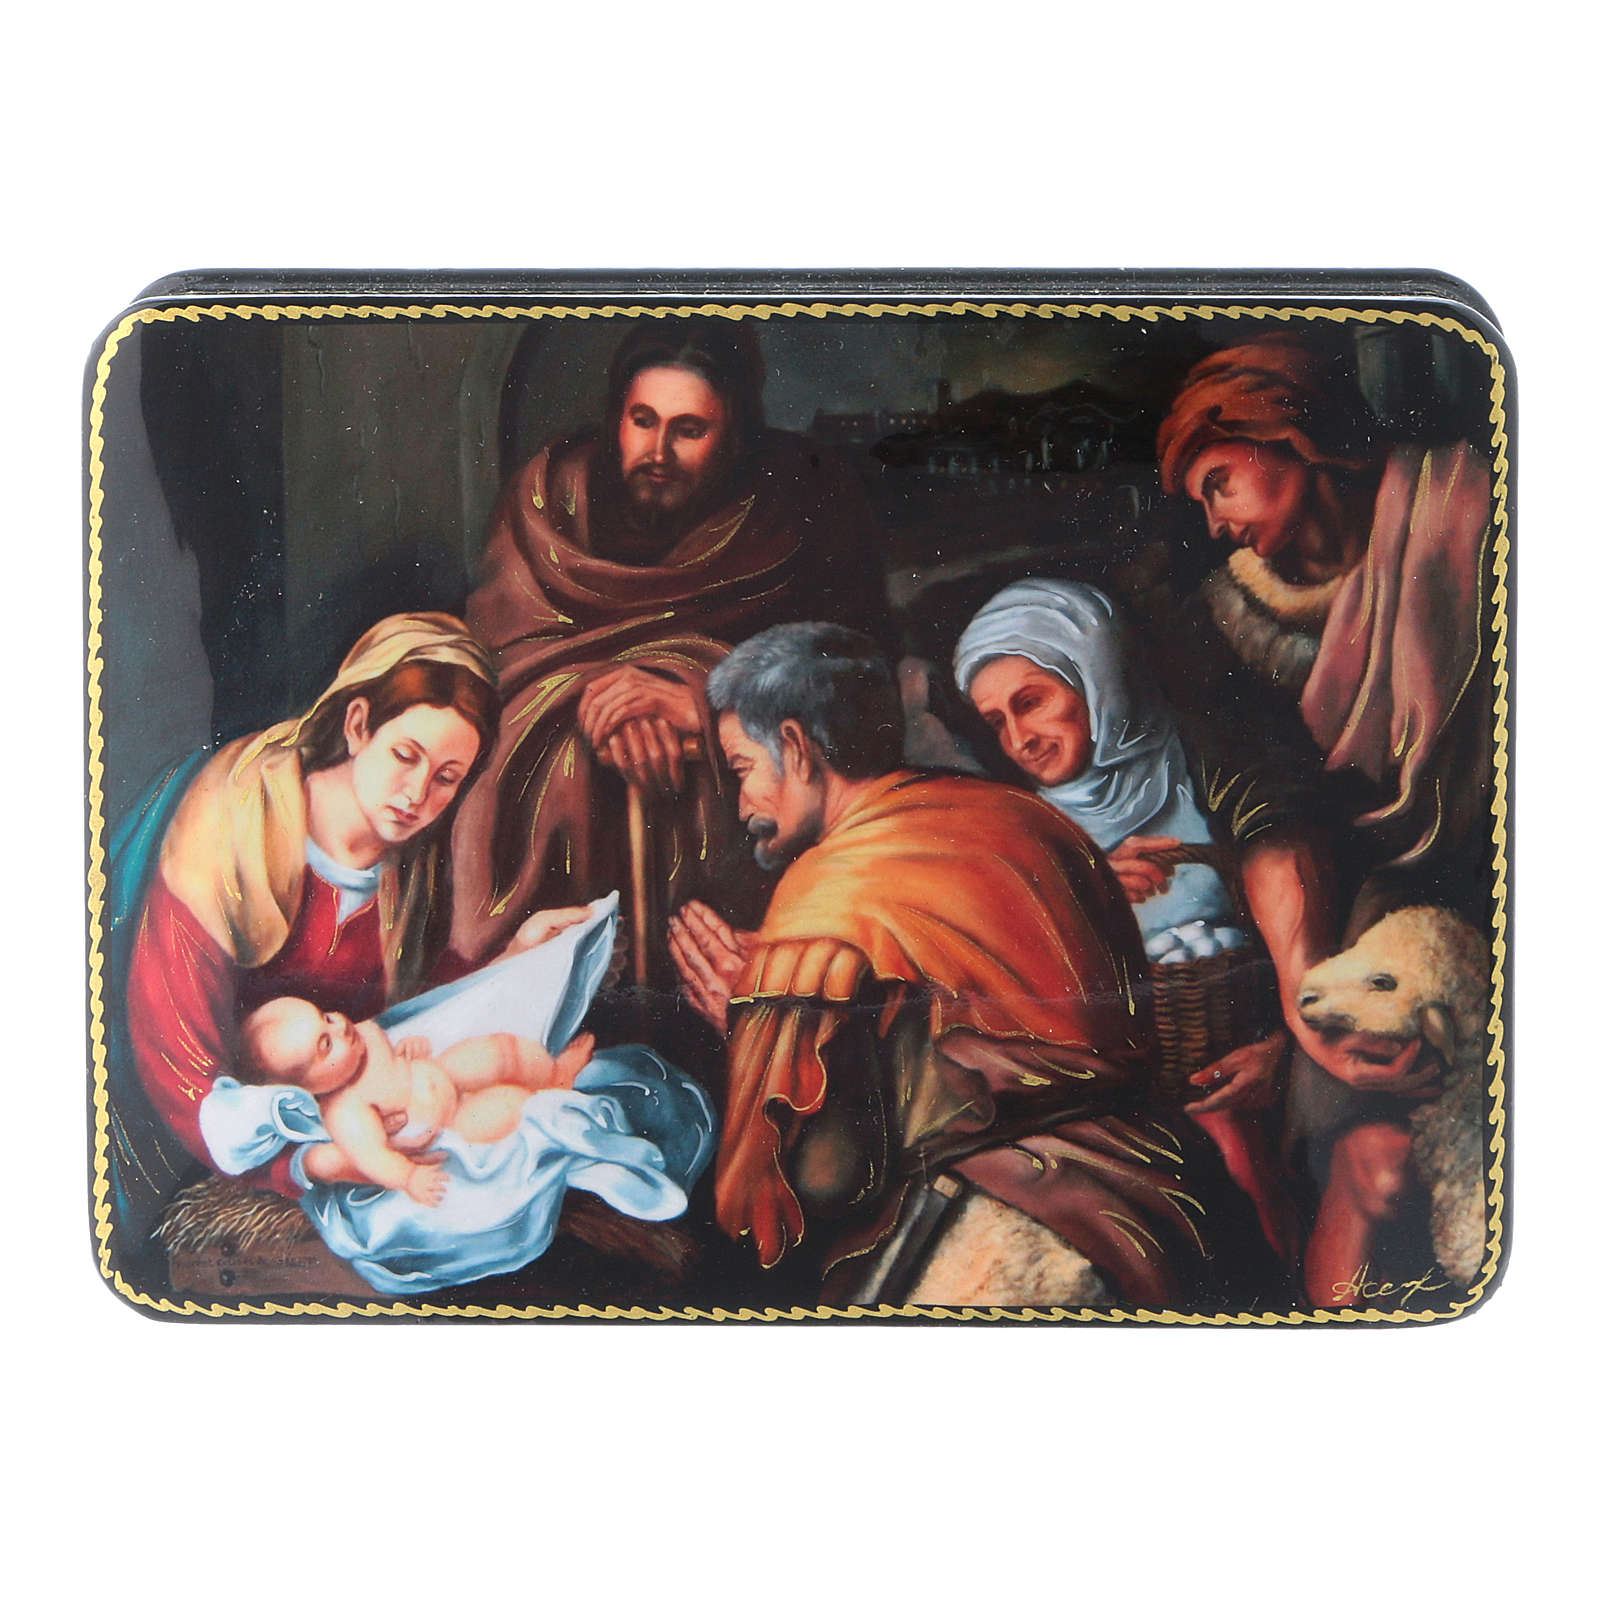 Russian box in papier-mâché the Birth of Christ of Murillo Fedoskino style 15x11 cm 4